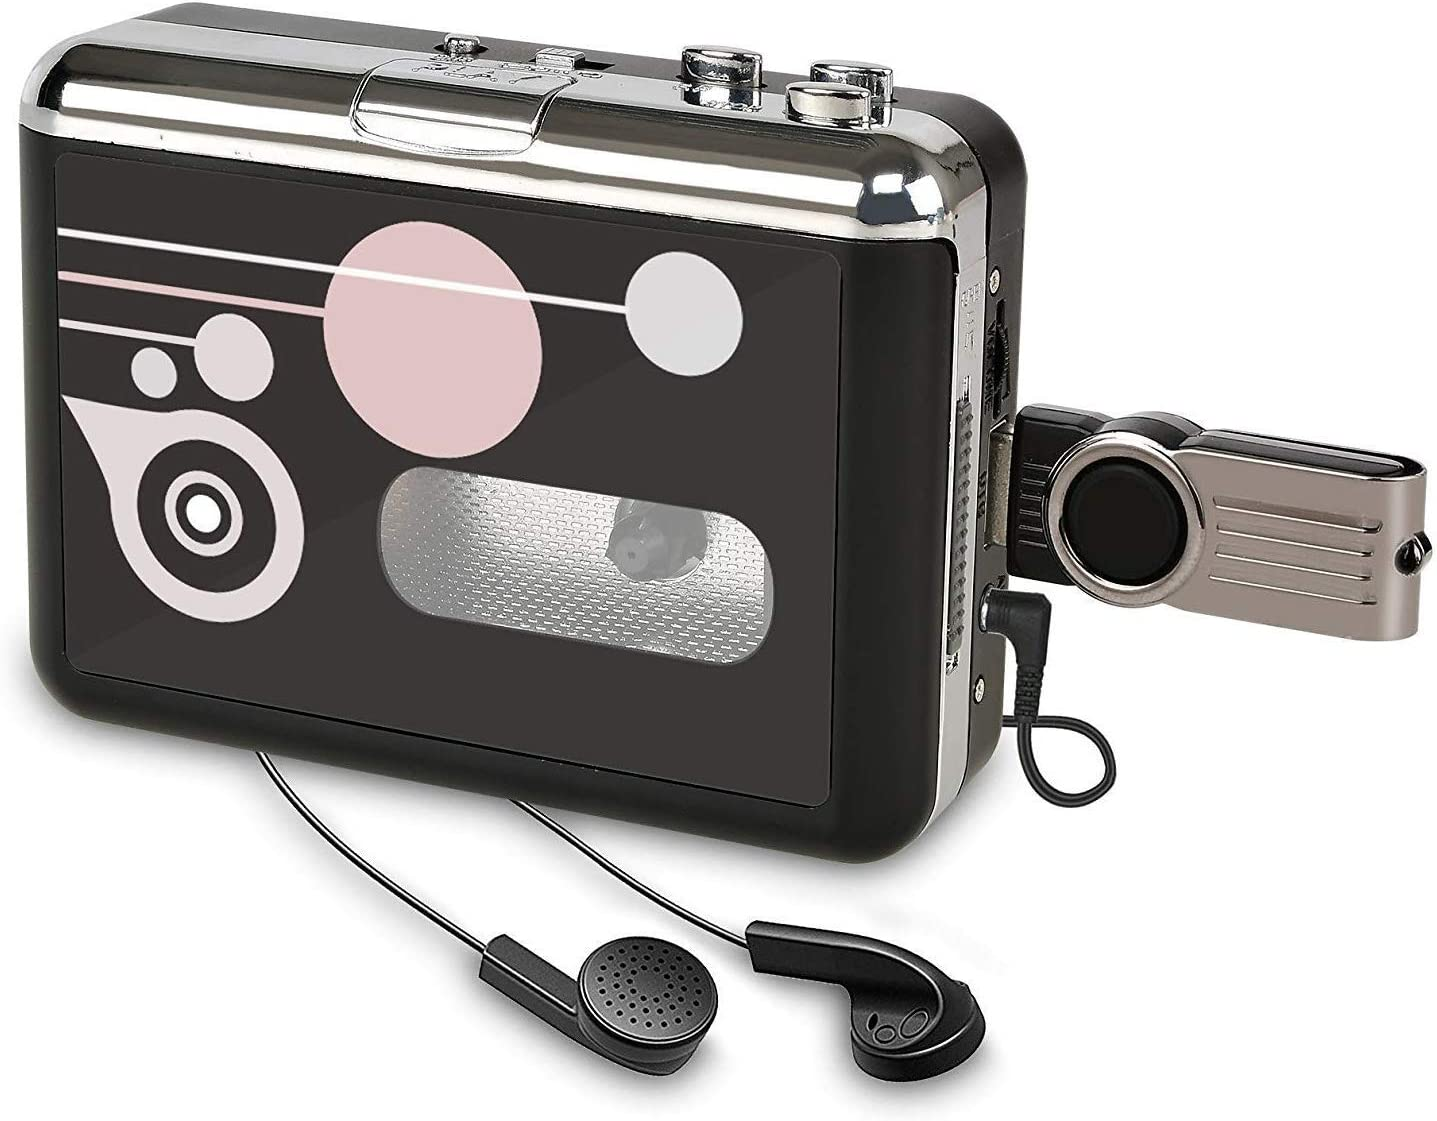 Rybozen Cassette Player, Portable Cassette Converter Recorder Convert Tapes to Digital MP3 Save into USB Flash Drive/ No PC Required Black